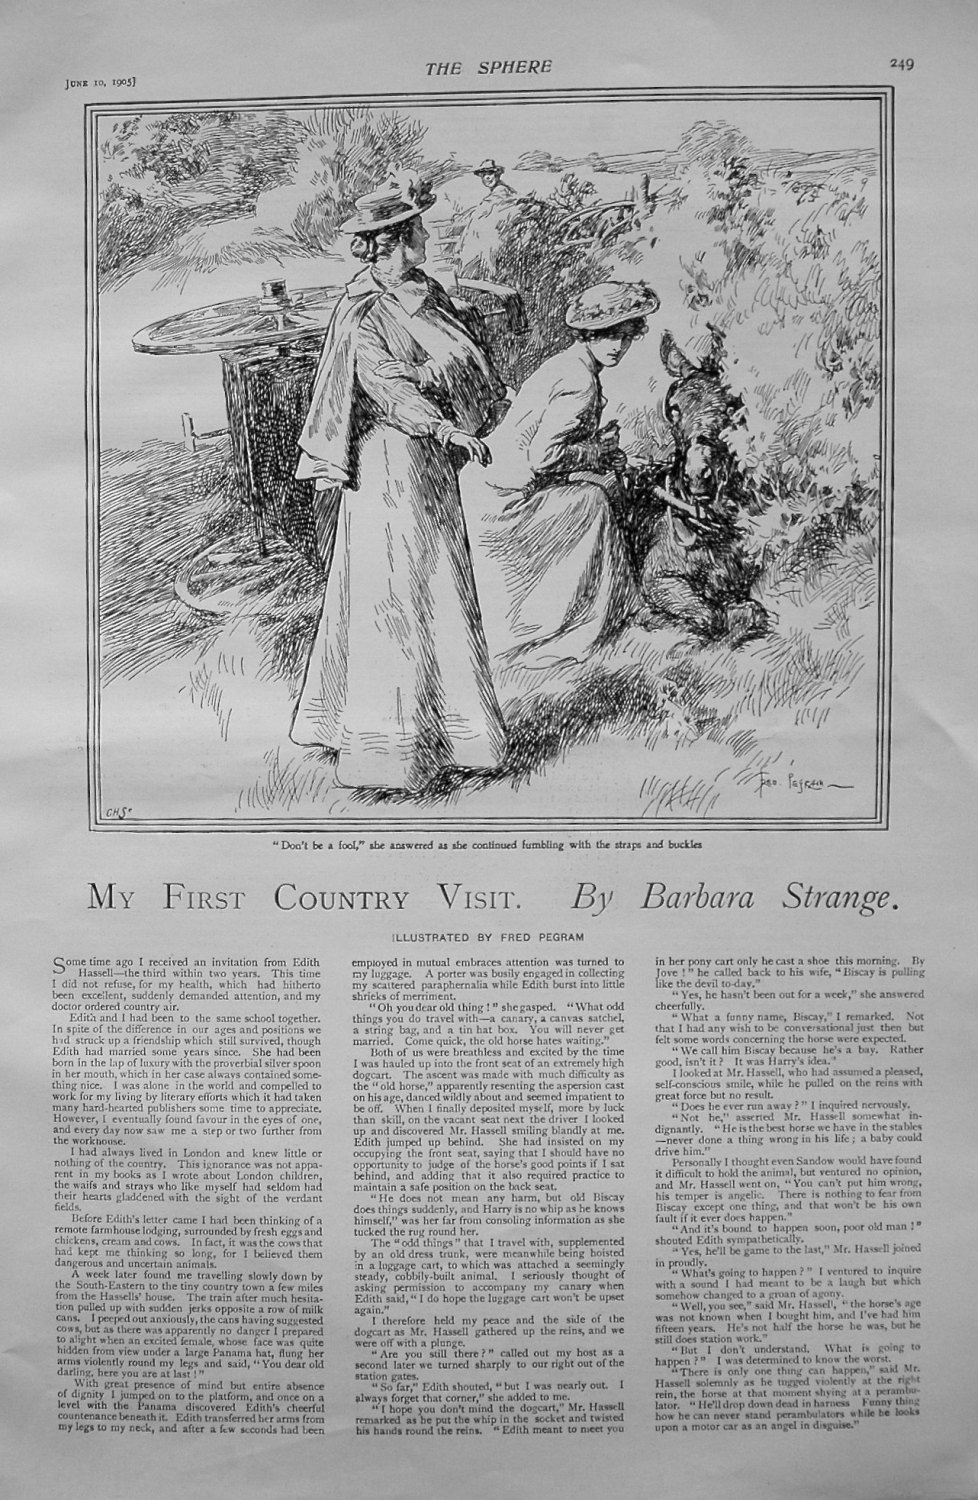 My First Country Visit. Written by Barbara Strange. 1905